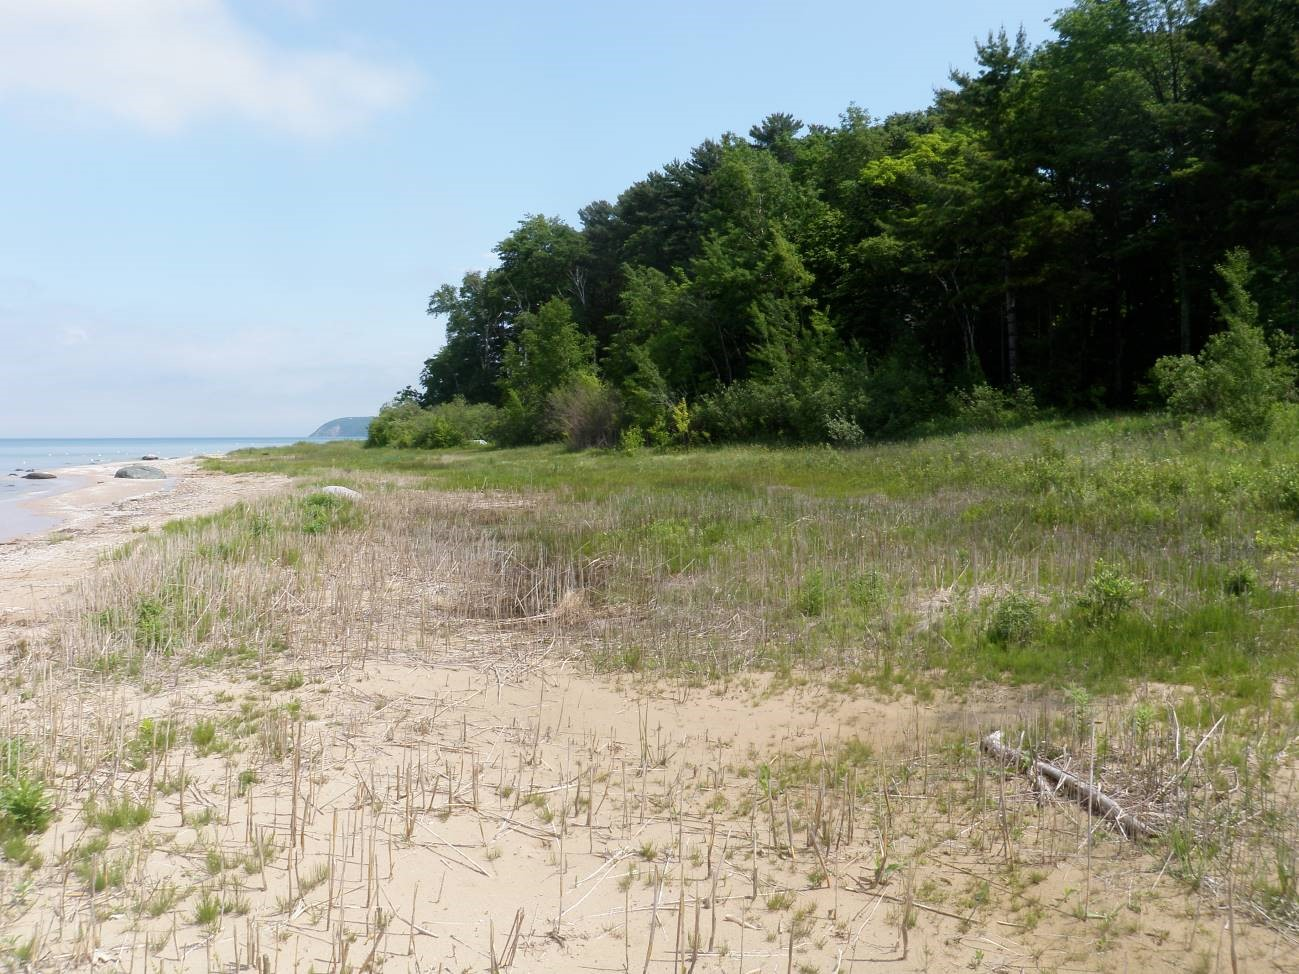 The same location in the Lighthouse Preserve after Phragmites was removed. Credit: Shaun Howard/Leelanau Conservancy